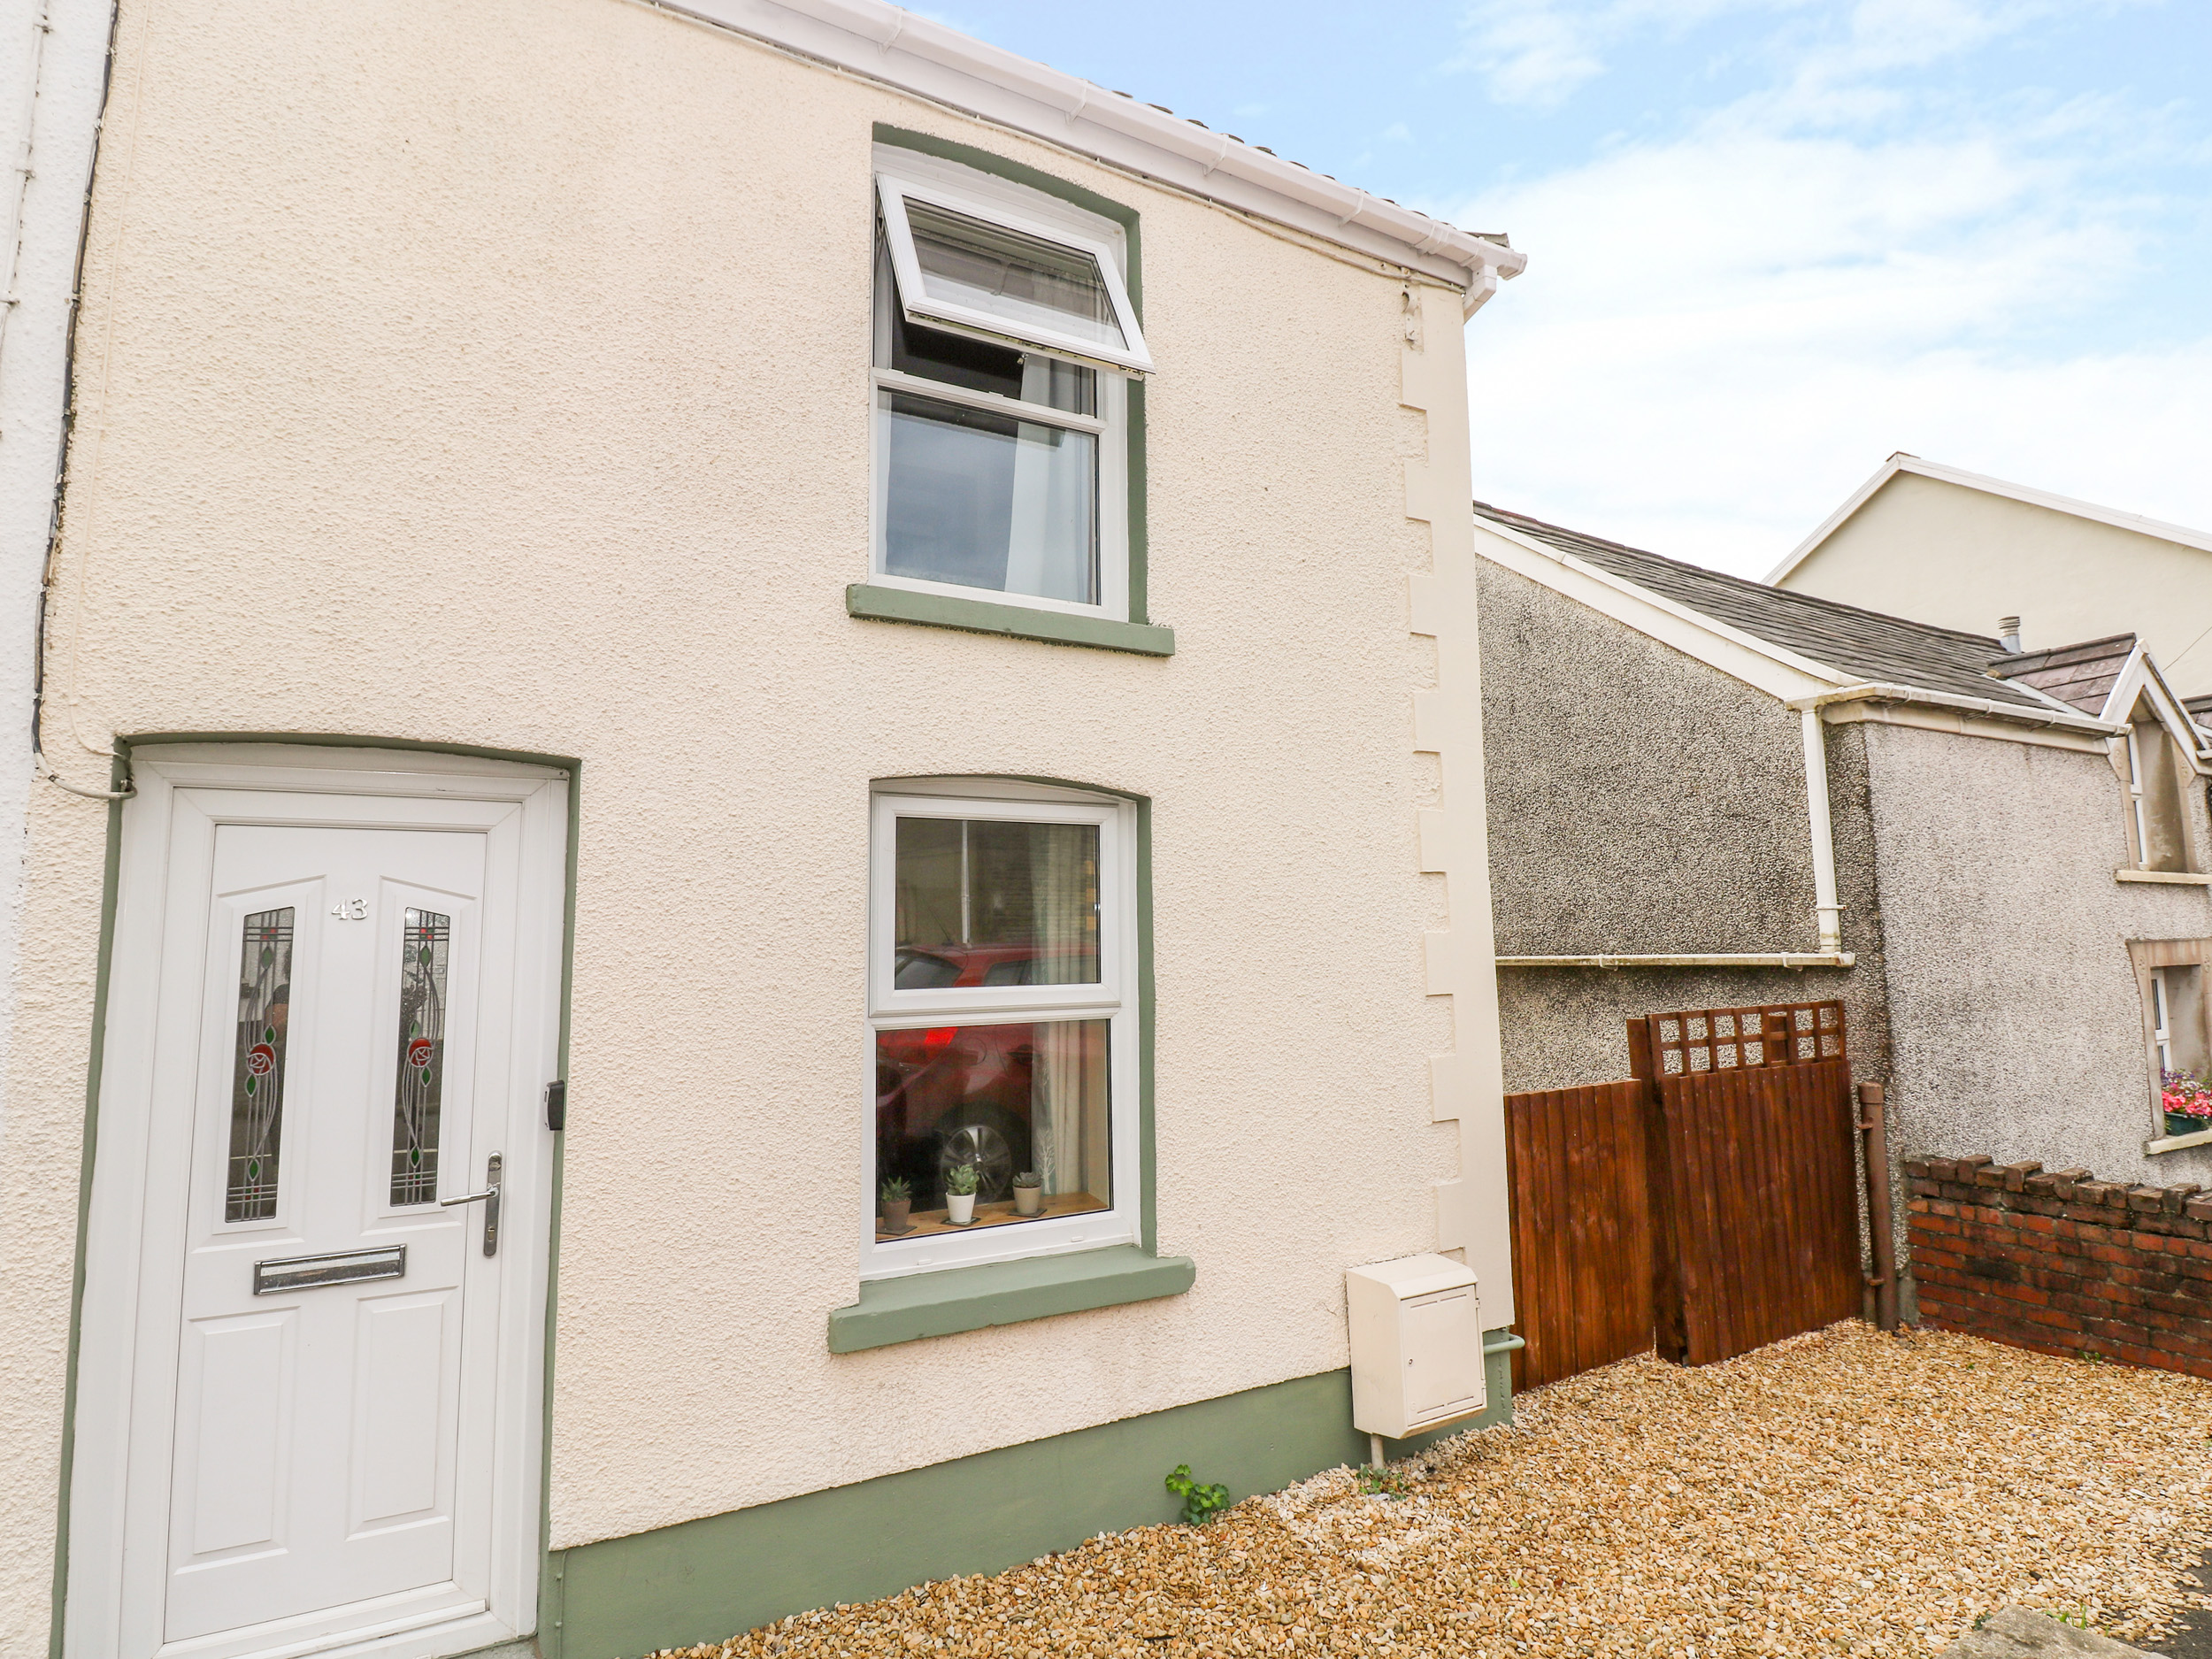 2 bedroom Cottage for rent in Ammanford